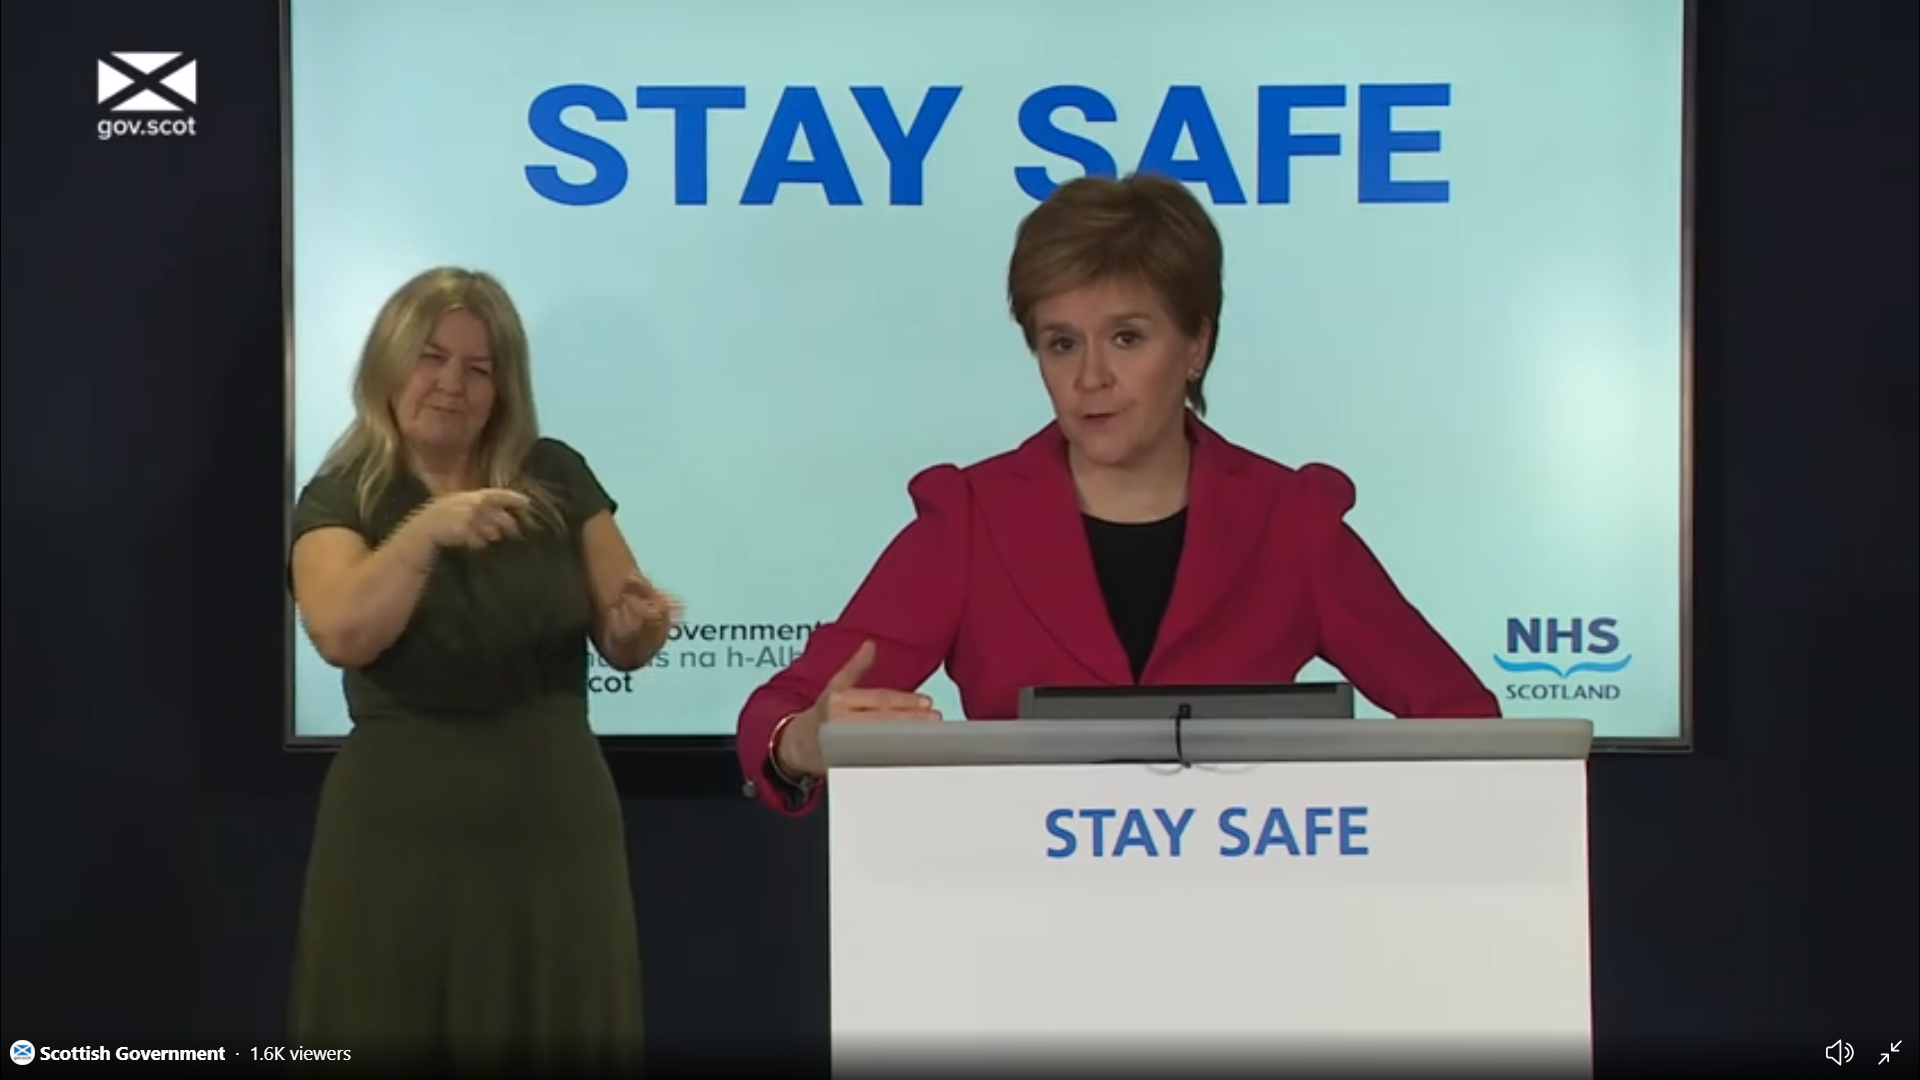 Nicola Sturgeon tells people to remember covid rules when watching Scotland play England